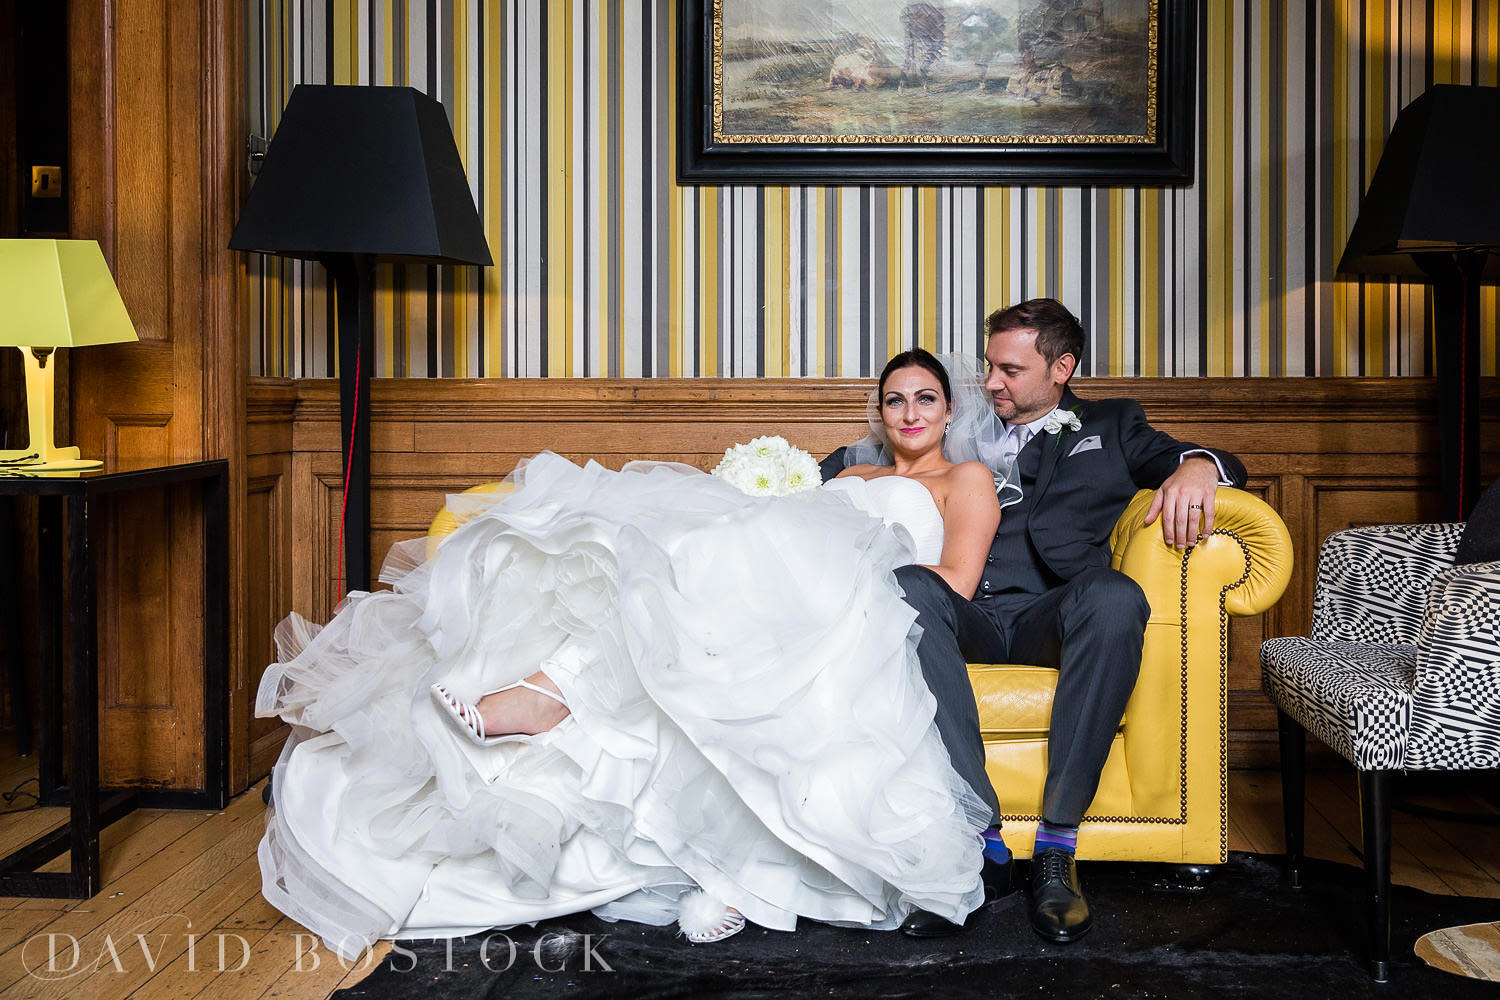 Eynsham Hall Gun Room bar bride and groom photo